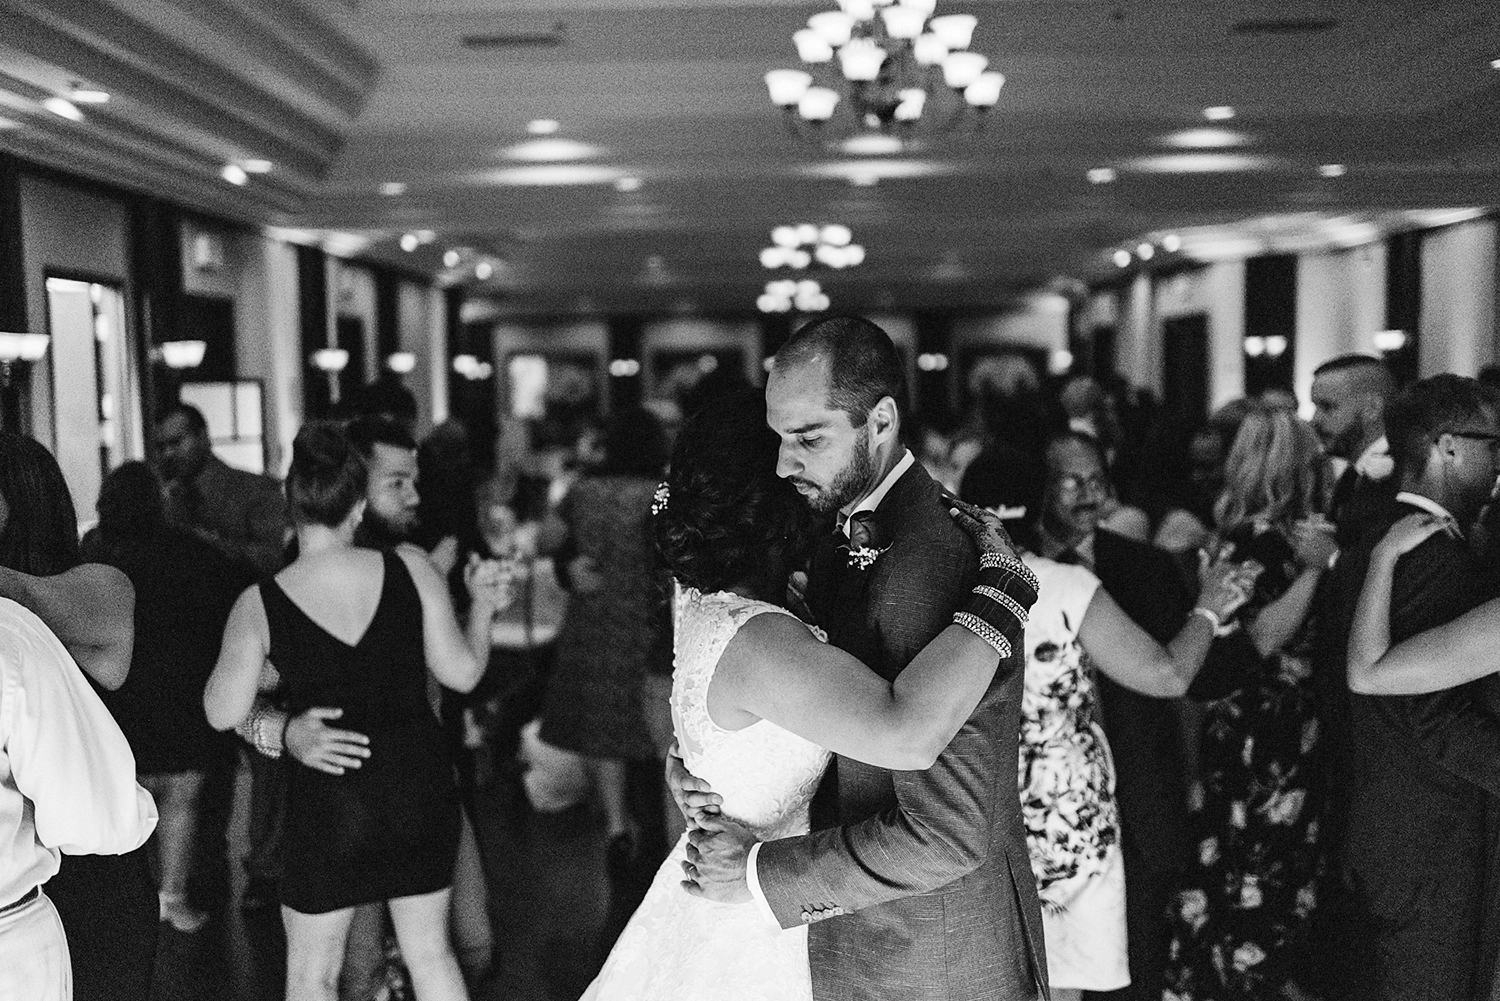 Toronto-Photojournalism-wedding-photographers-3B-Photography-Candid-Documentary-Film-Photography-Analog-Ontario-Extremely-intimate-and-quiet-moment-between-bride-and-groom-first-dance.jpg